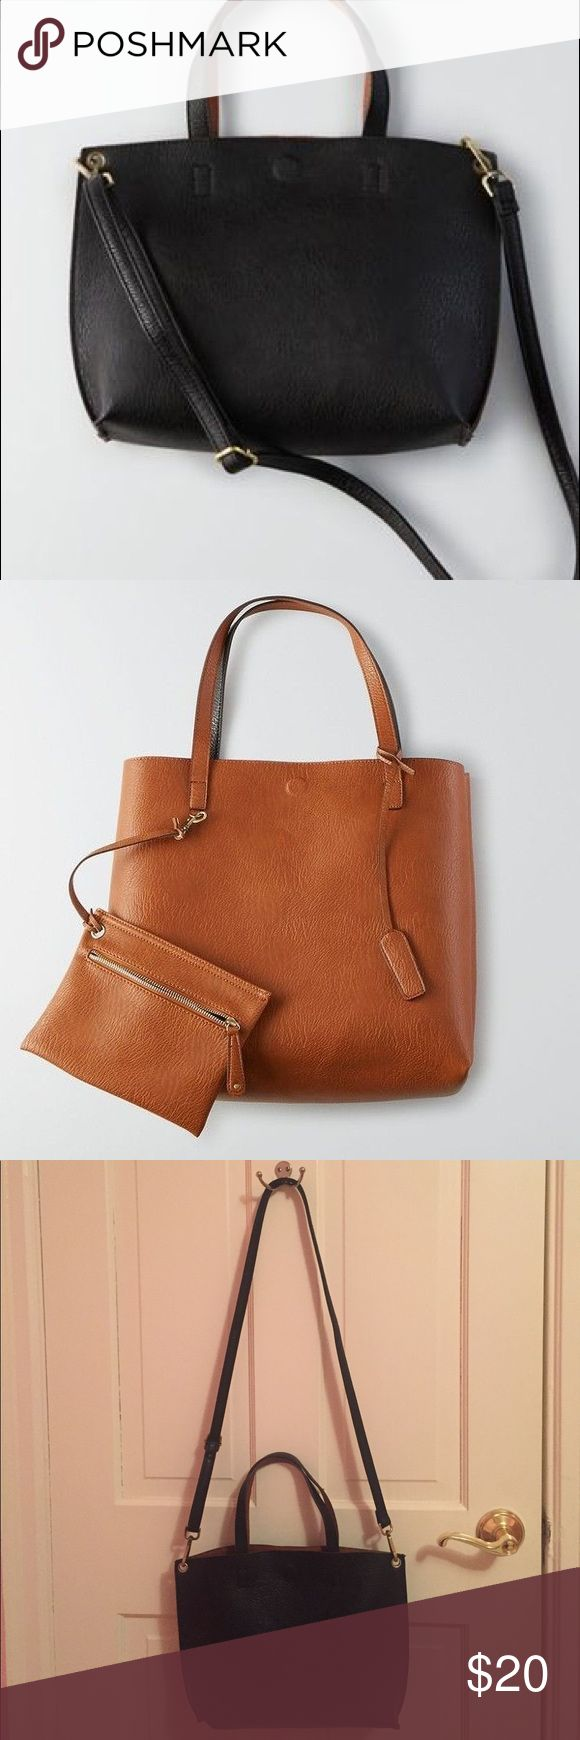 Small reversible cross body tote. Just bought and never used. Tote is reversible in black and brown as shown, comes with a small pouch for cash, cards, or a cell phone. Crossbody strap is adjustable and it has a magnetic closure. American Eagle Outfitters Bags Crossbody Bags